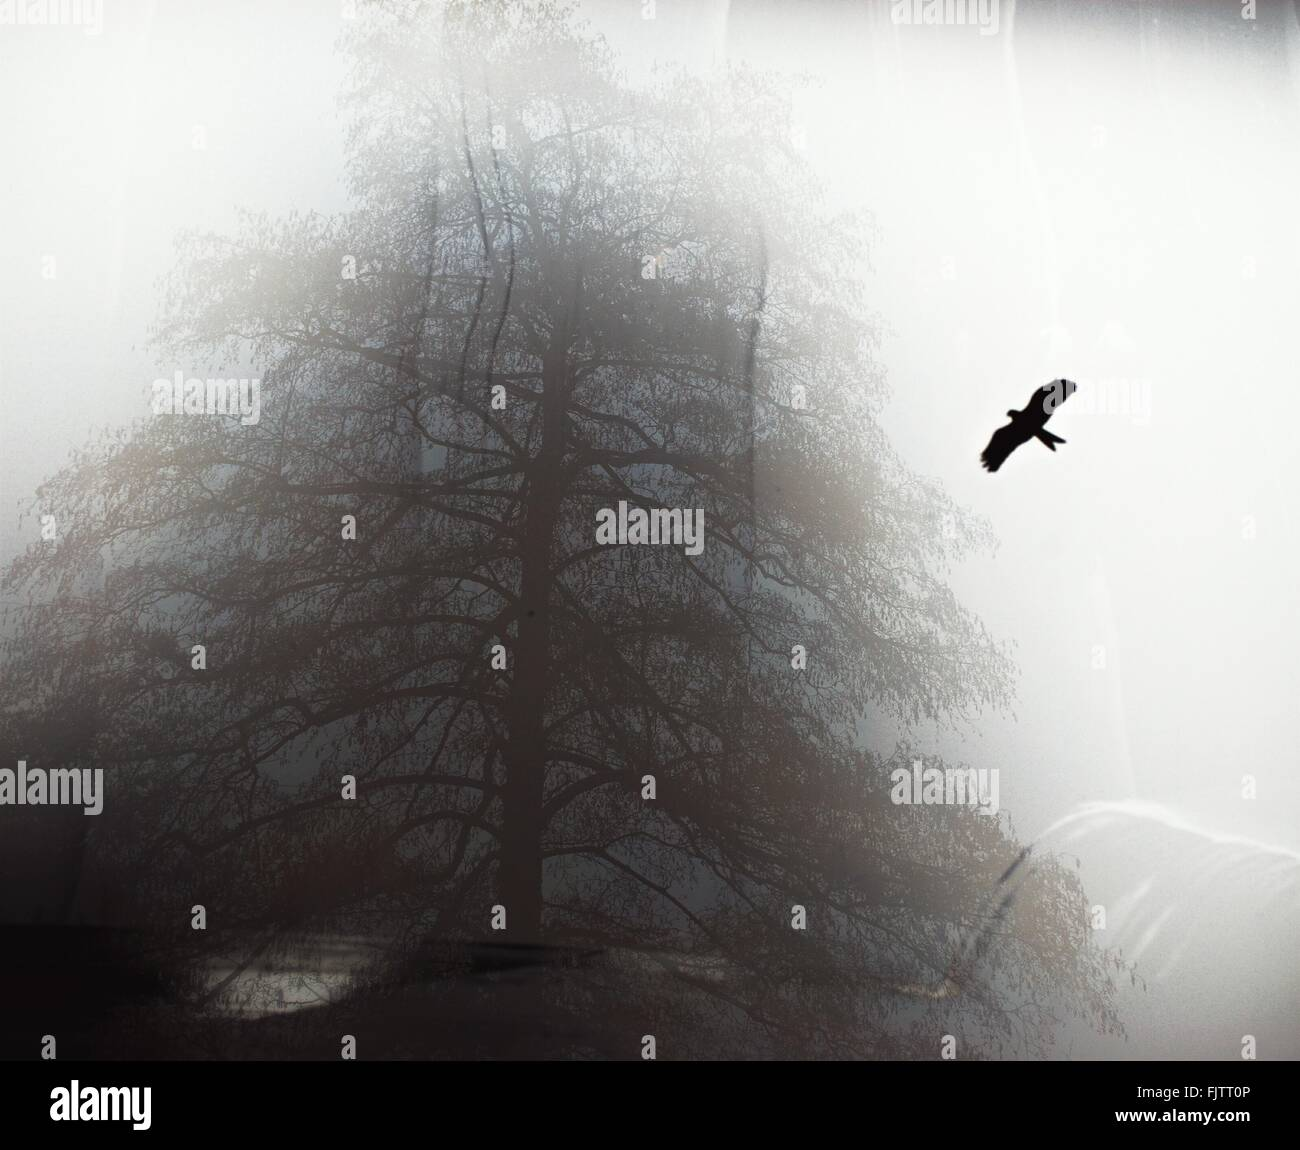 Digital Composite Image Of Silhouette Bird Flying In Sky And Trees - Stock Image